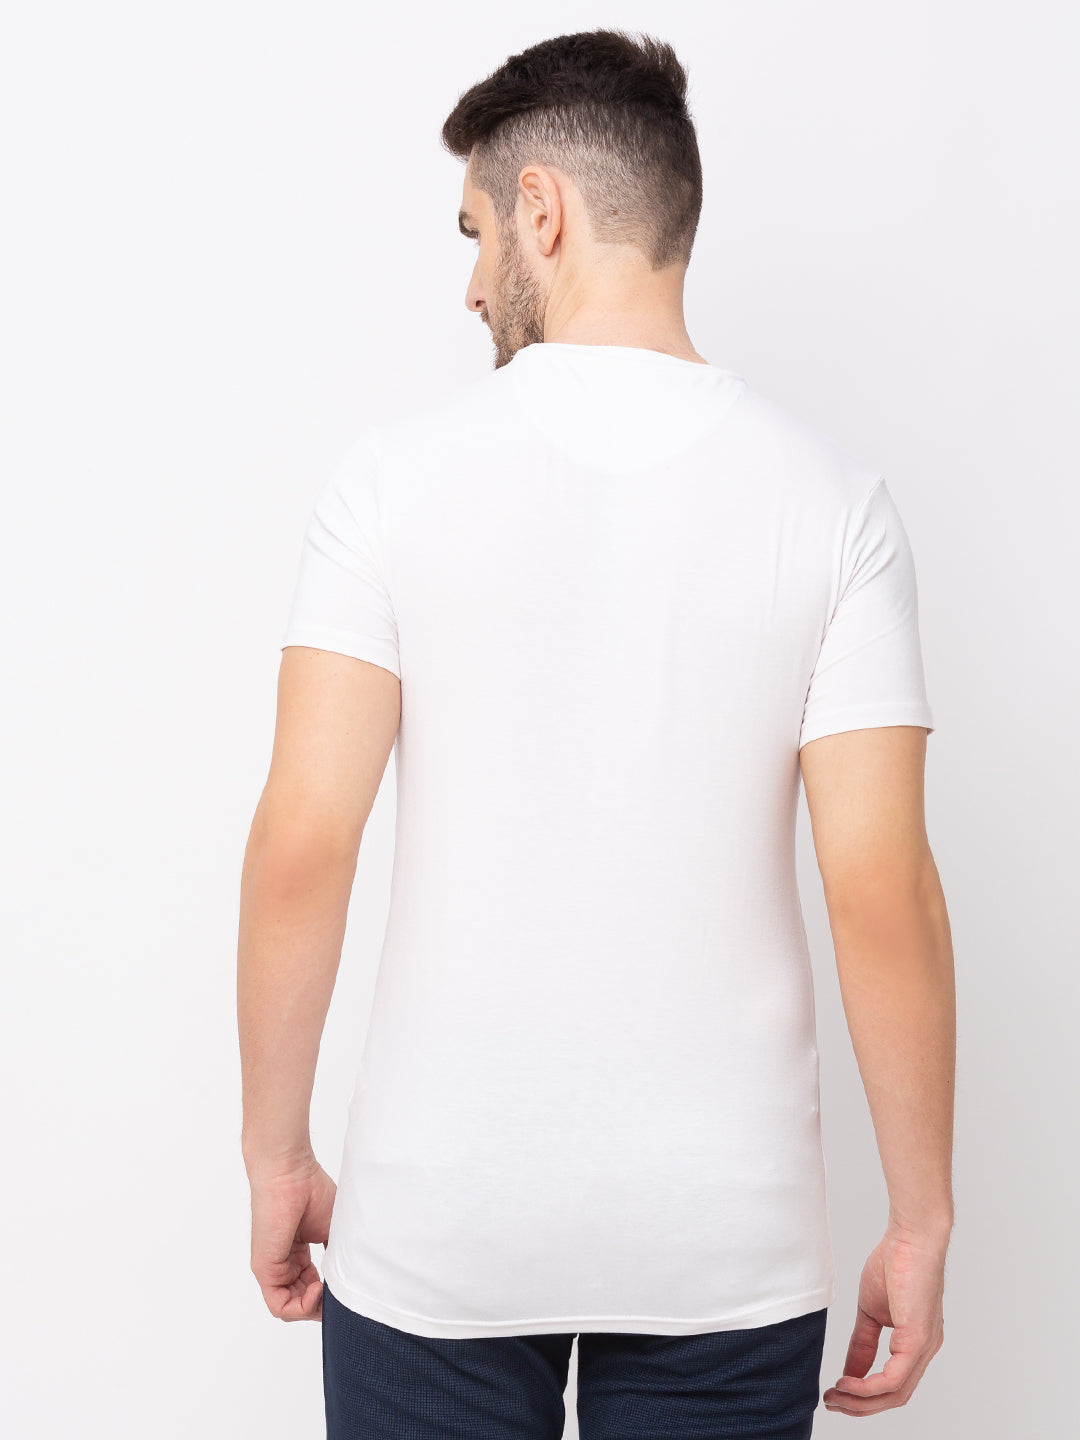 Globus White Printed T-Shirt-3